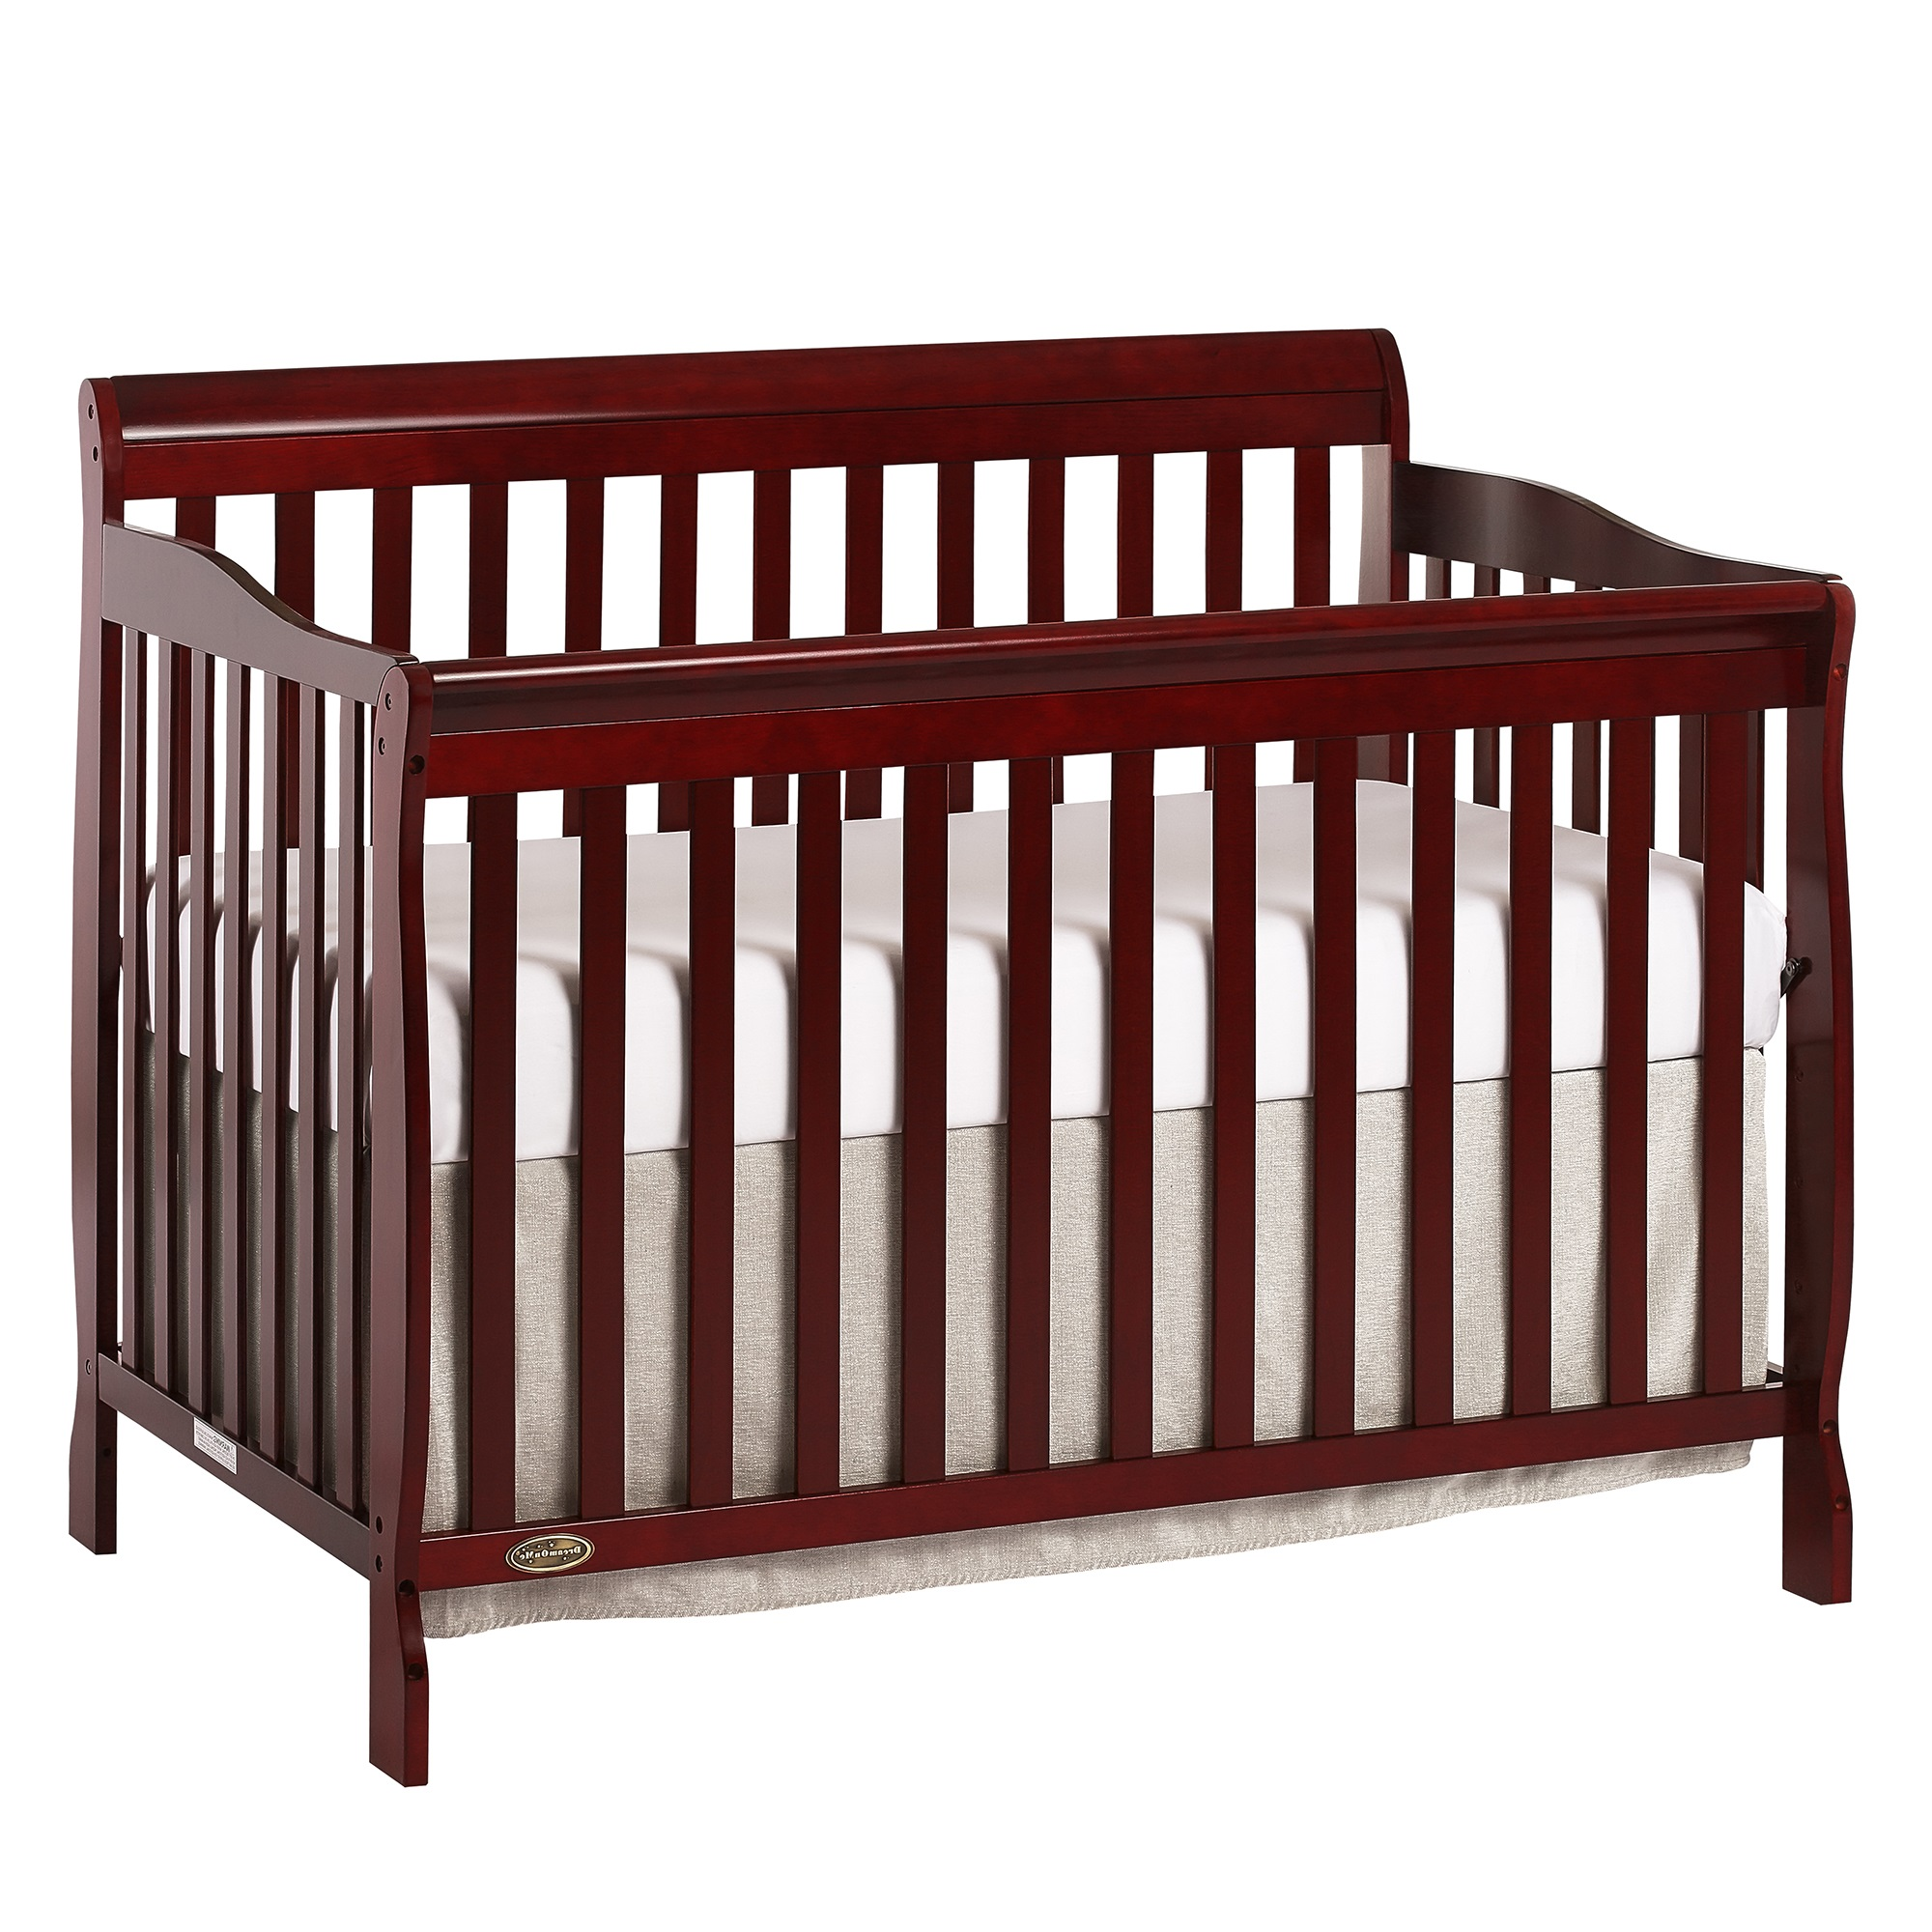 Dream On Me Ashton 5-in-1 Convertible Crib, Cherry